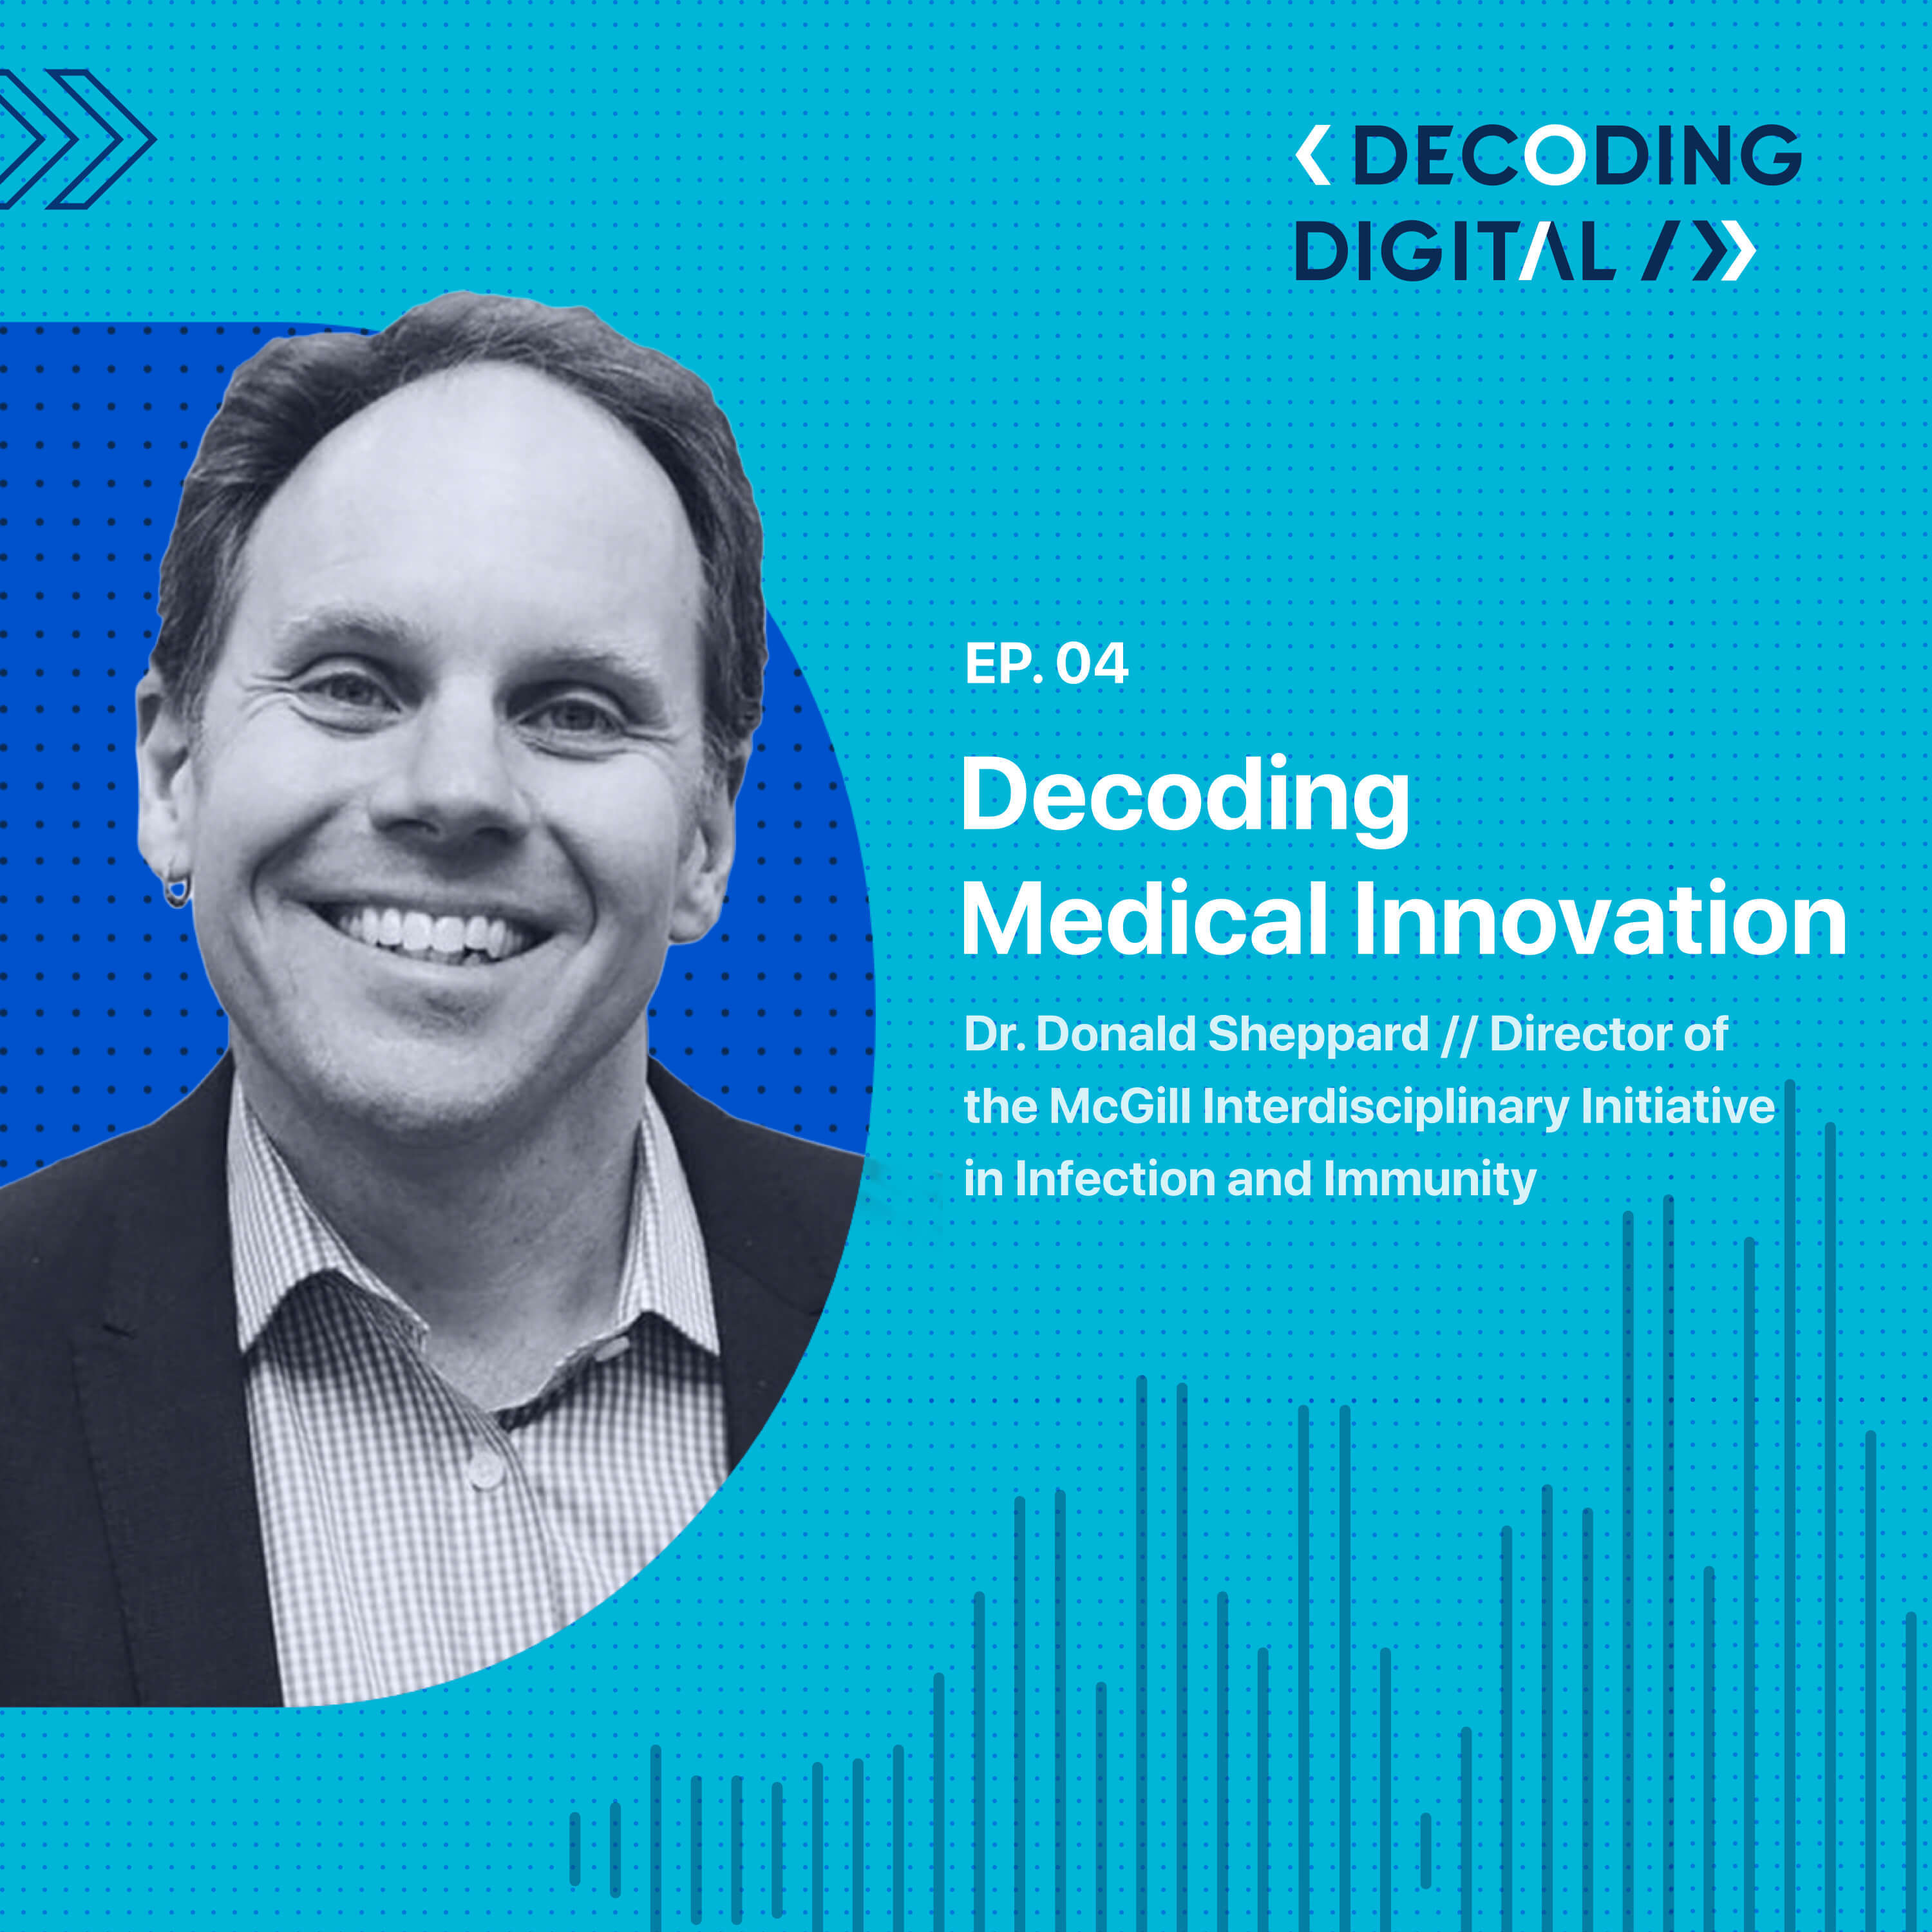 Decoding Medical Innovation: Dr. Don Sheppard on Fighting Disease